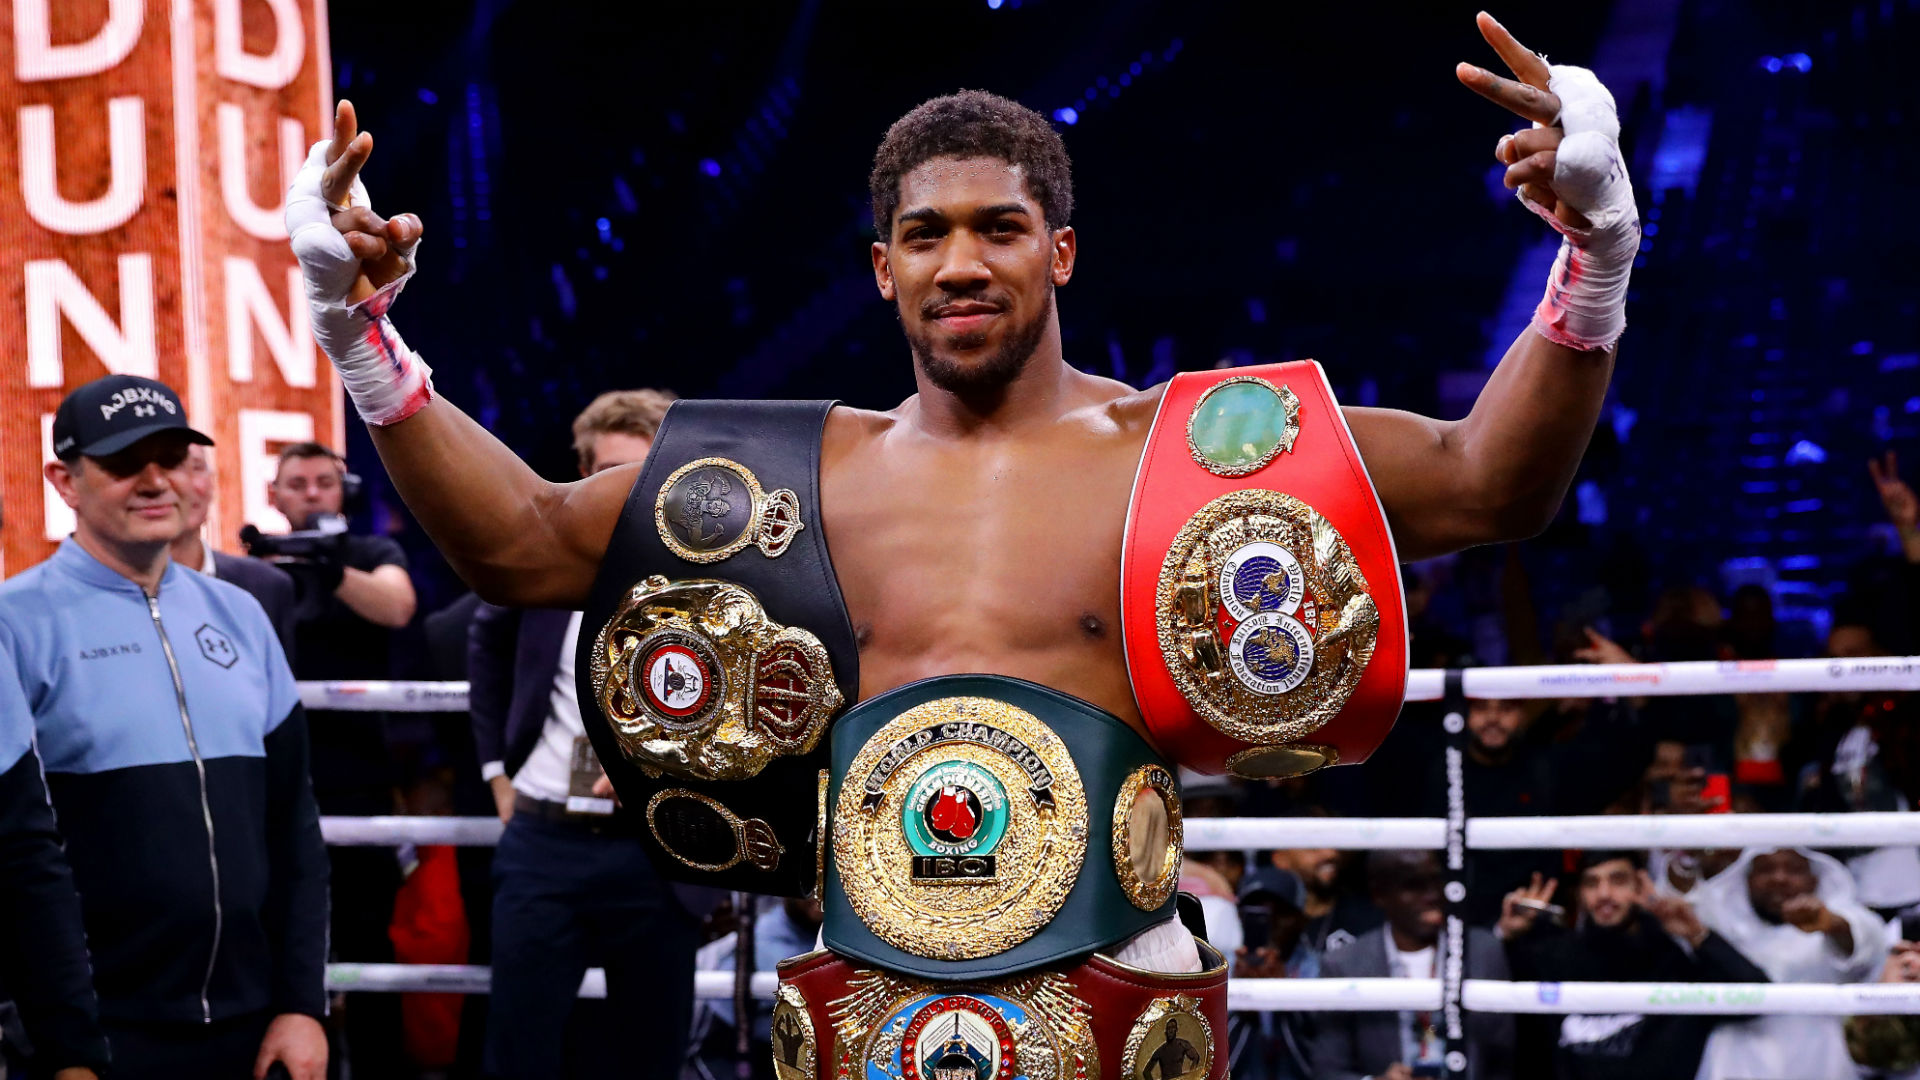 I'm successful, isn't that good enough? - Joshua rejects Wilder criticism of Ruiz performance